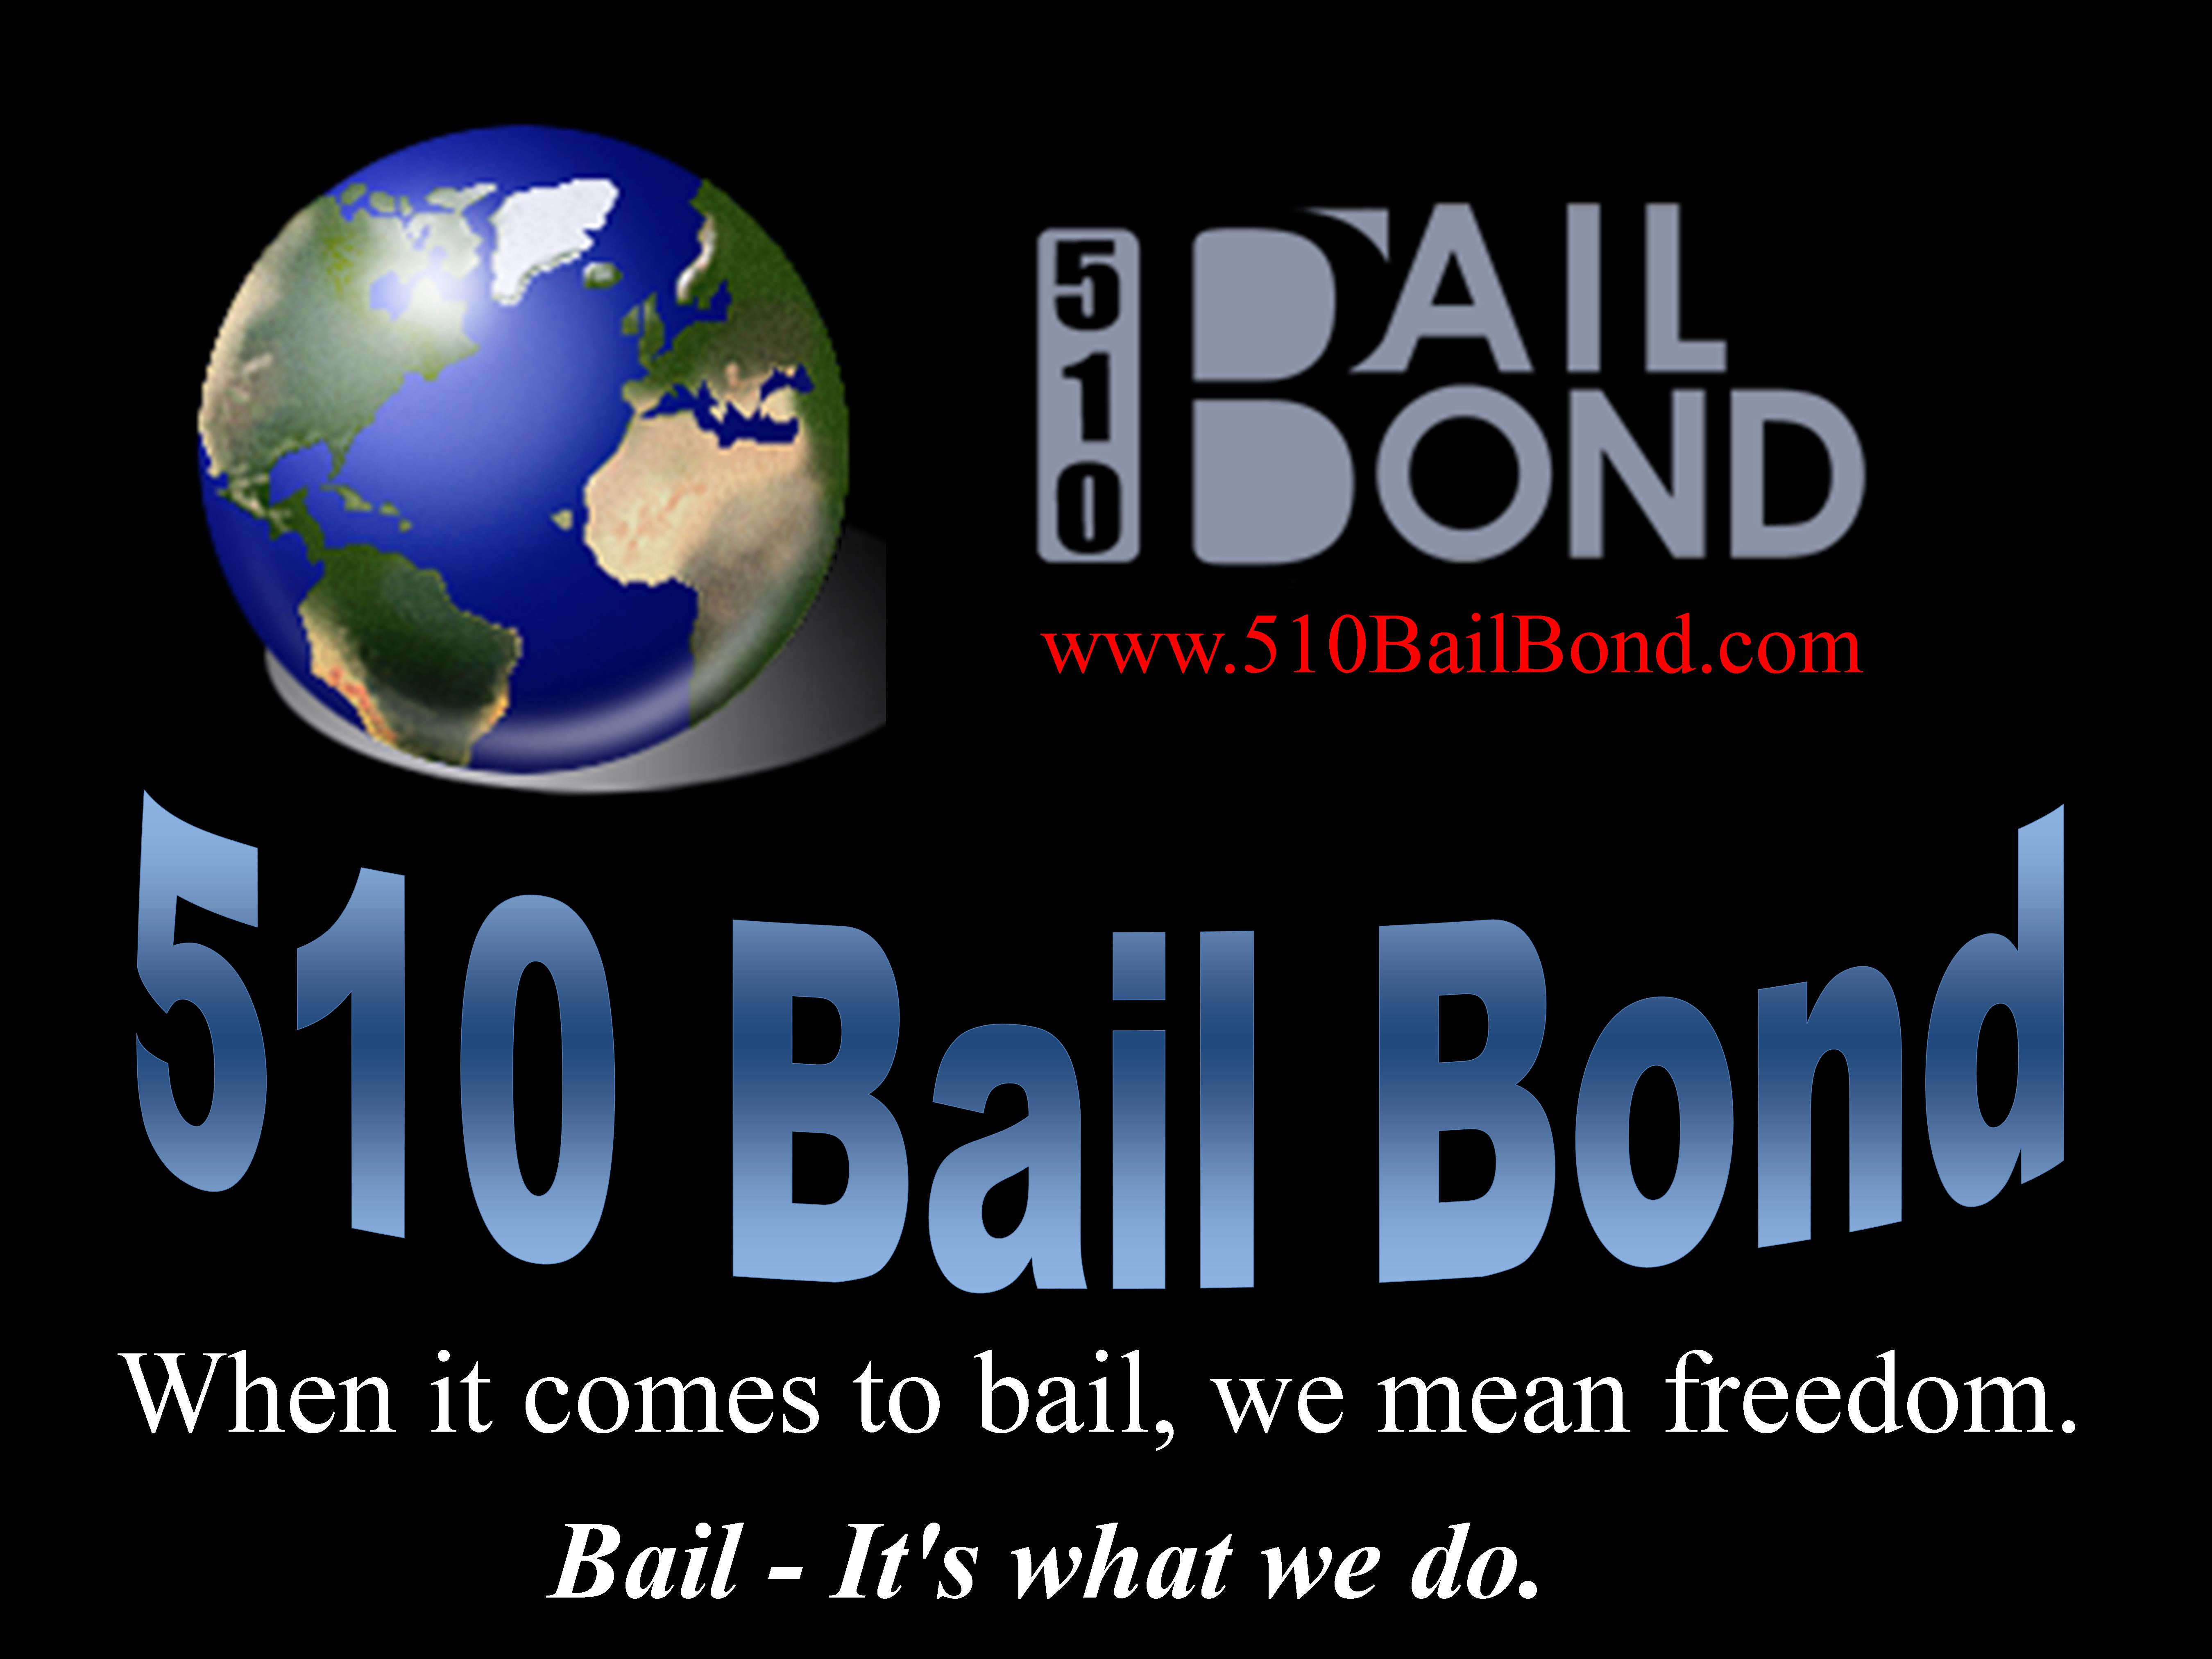 Comes to bail we mean freedom